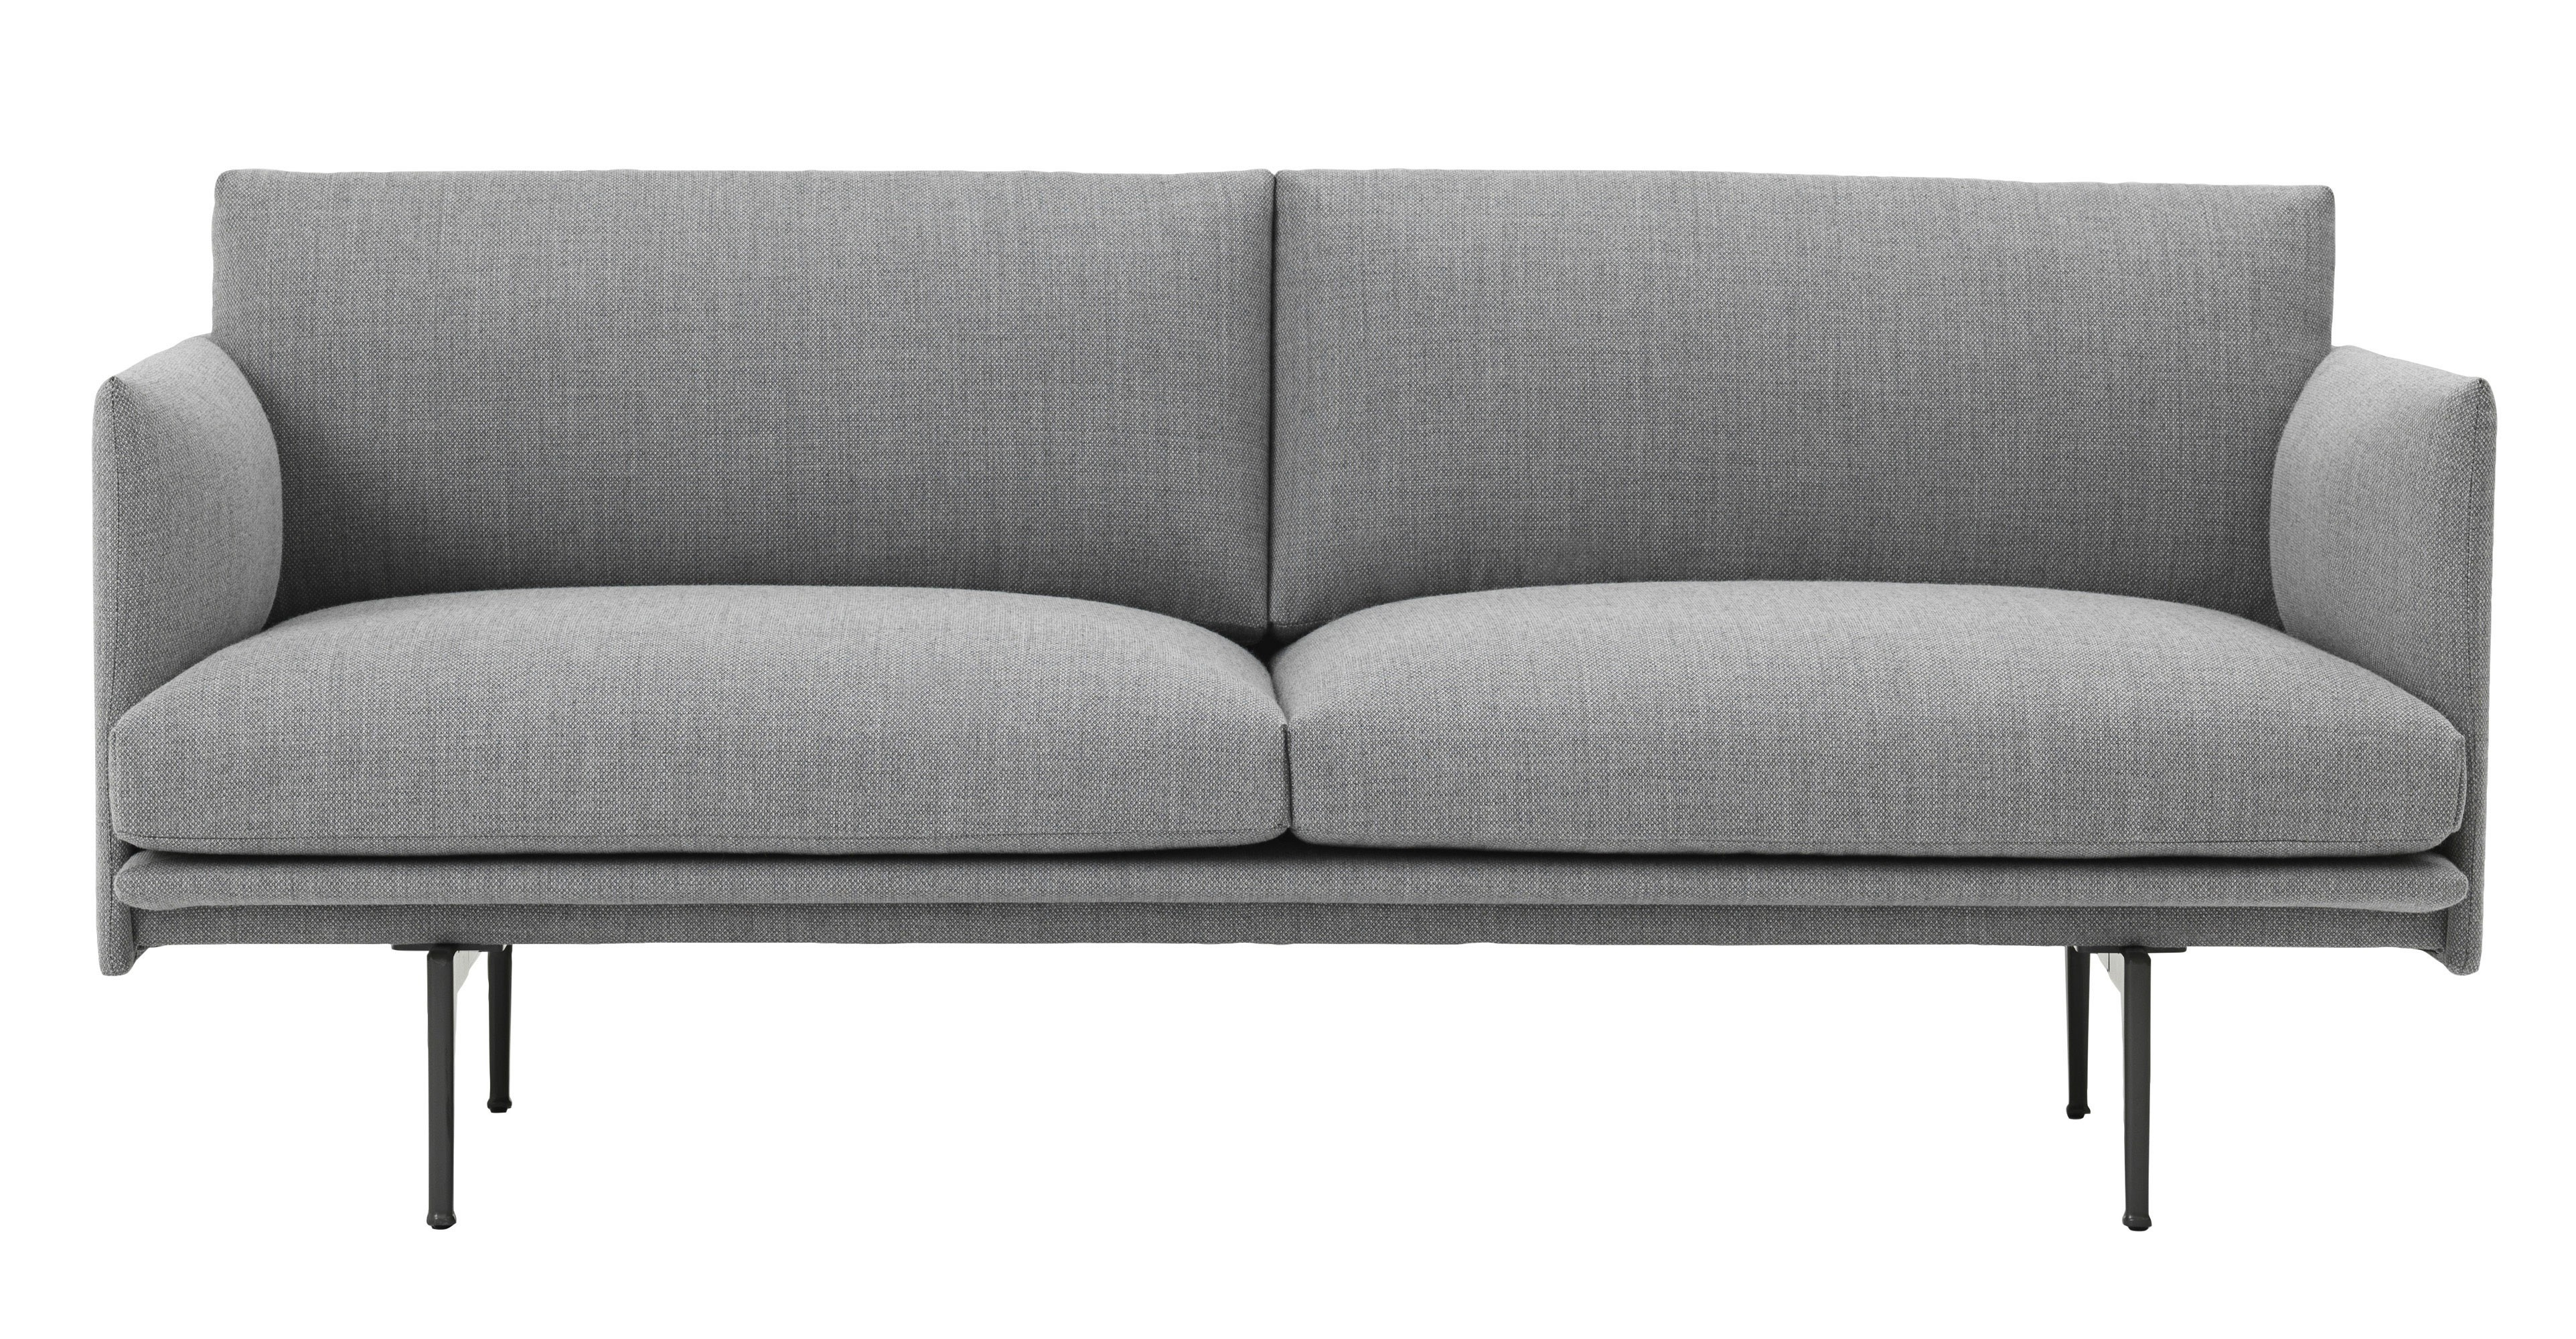 Muuto Outline 2 Seater Sofa GR Shop Canada